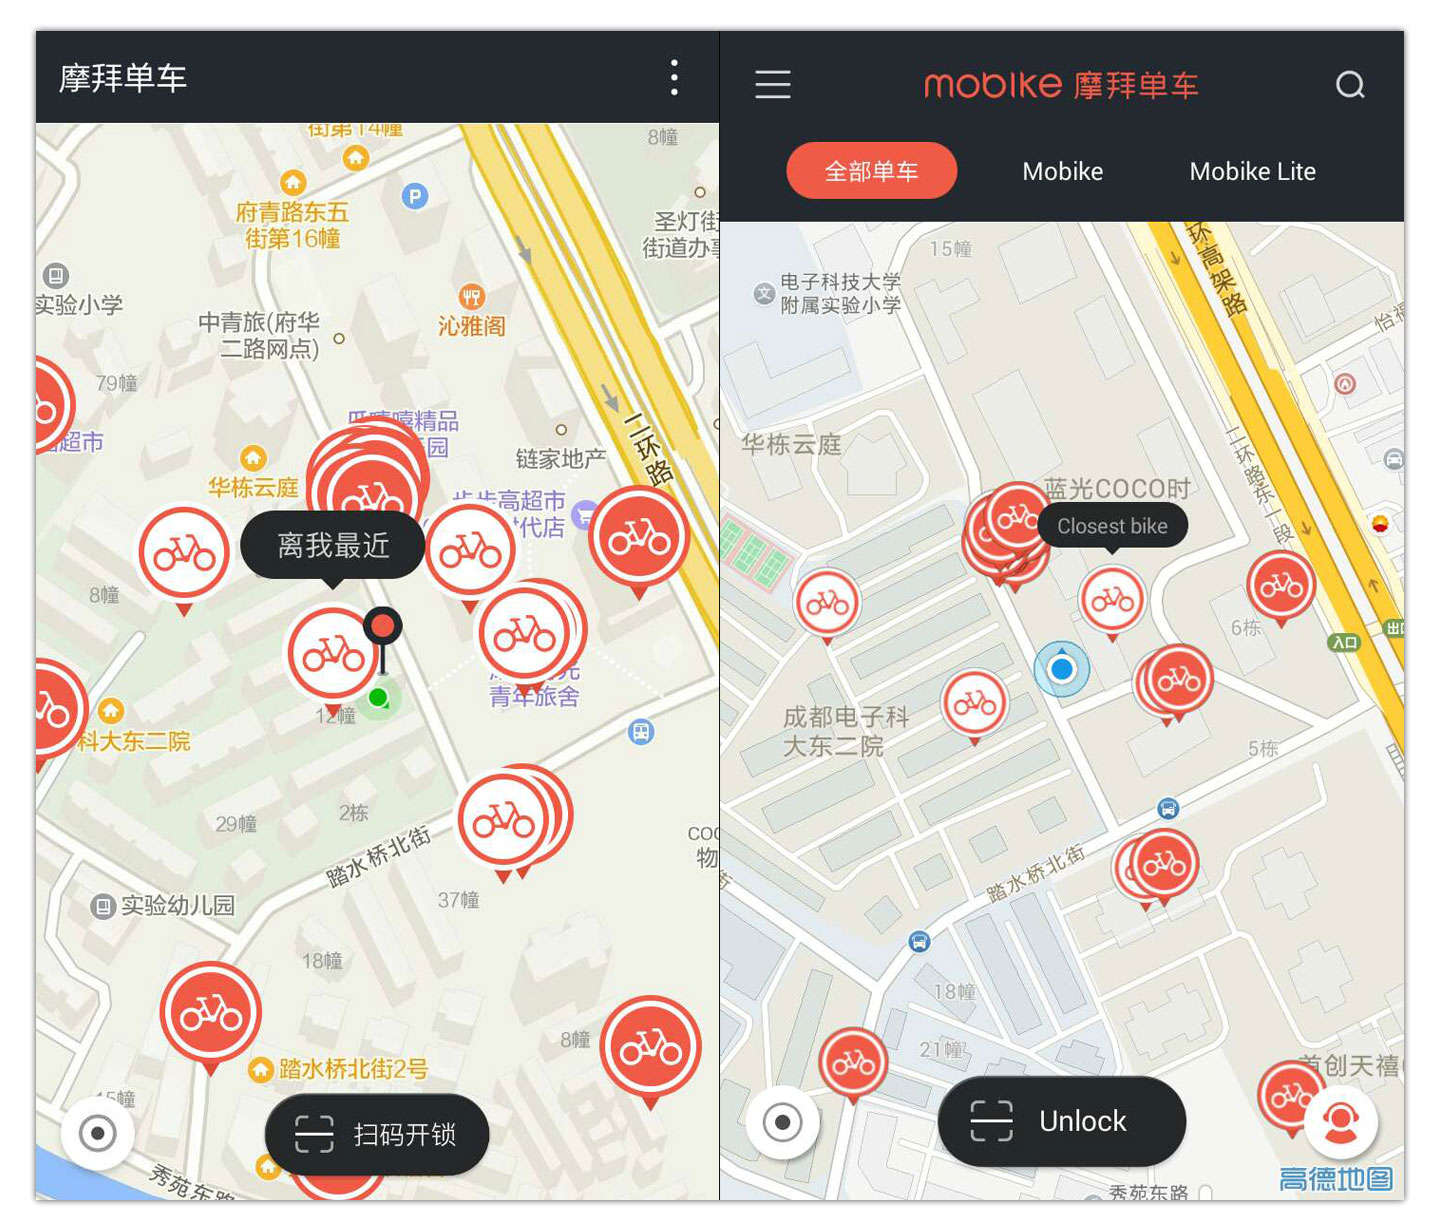 WeChat Mini Programs Mobike